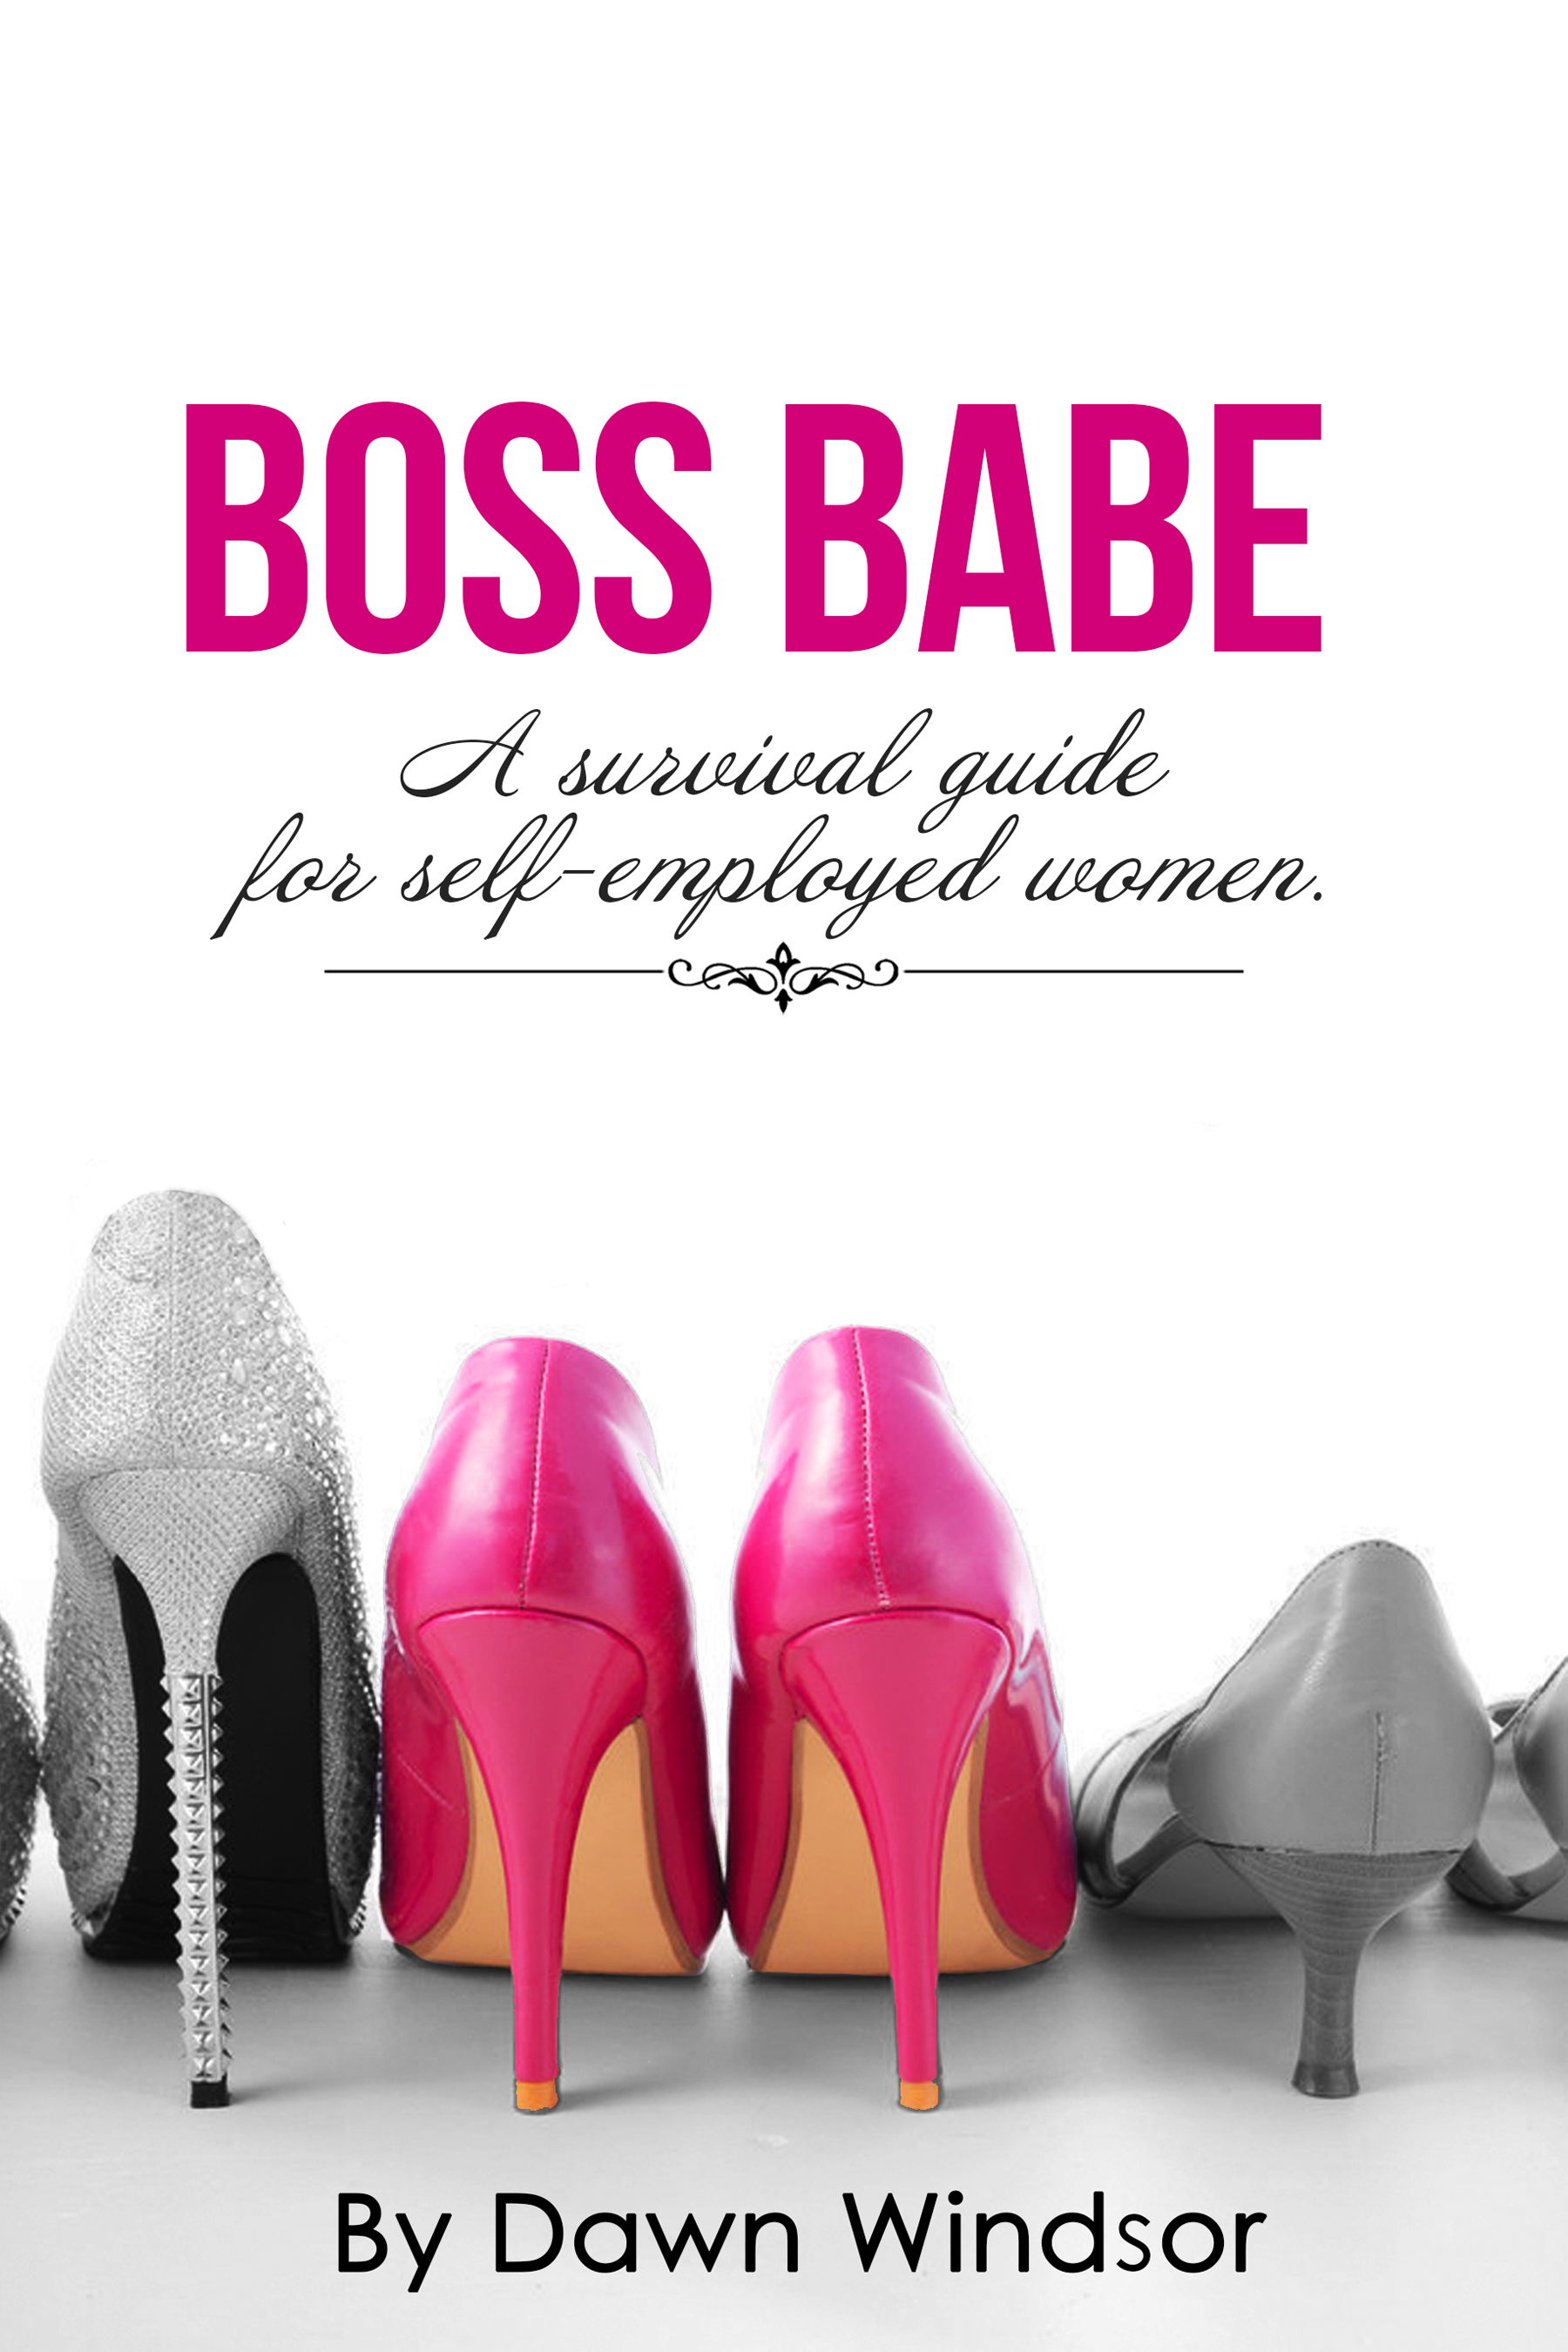 Boss Babe: A Survival Guide for Self-Employed Women